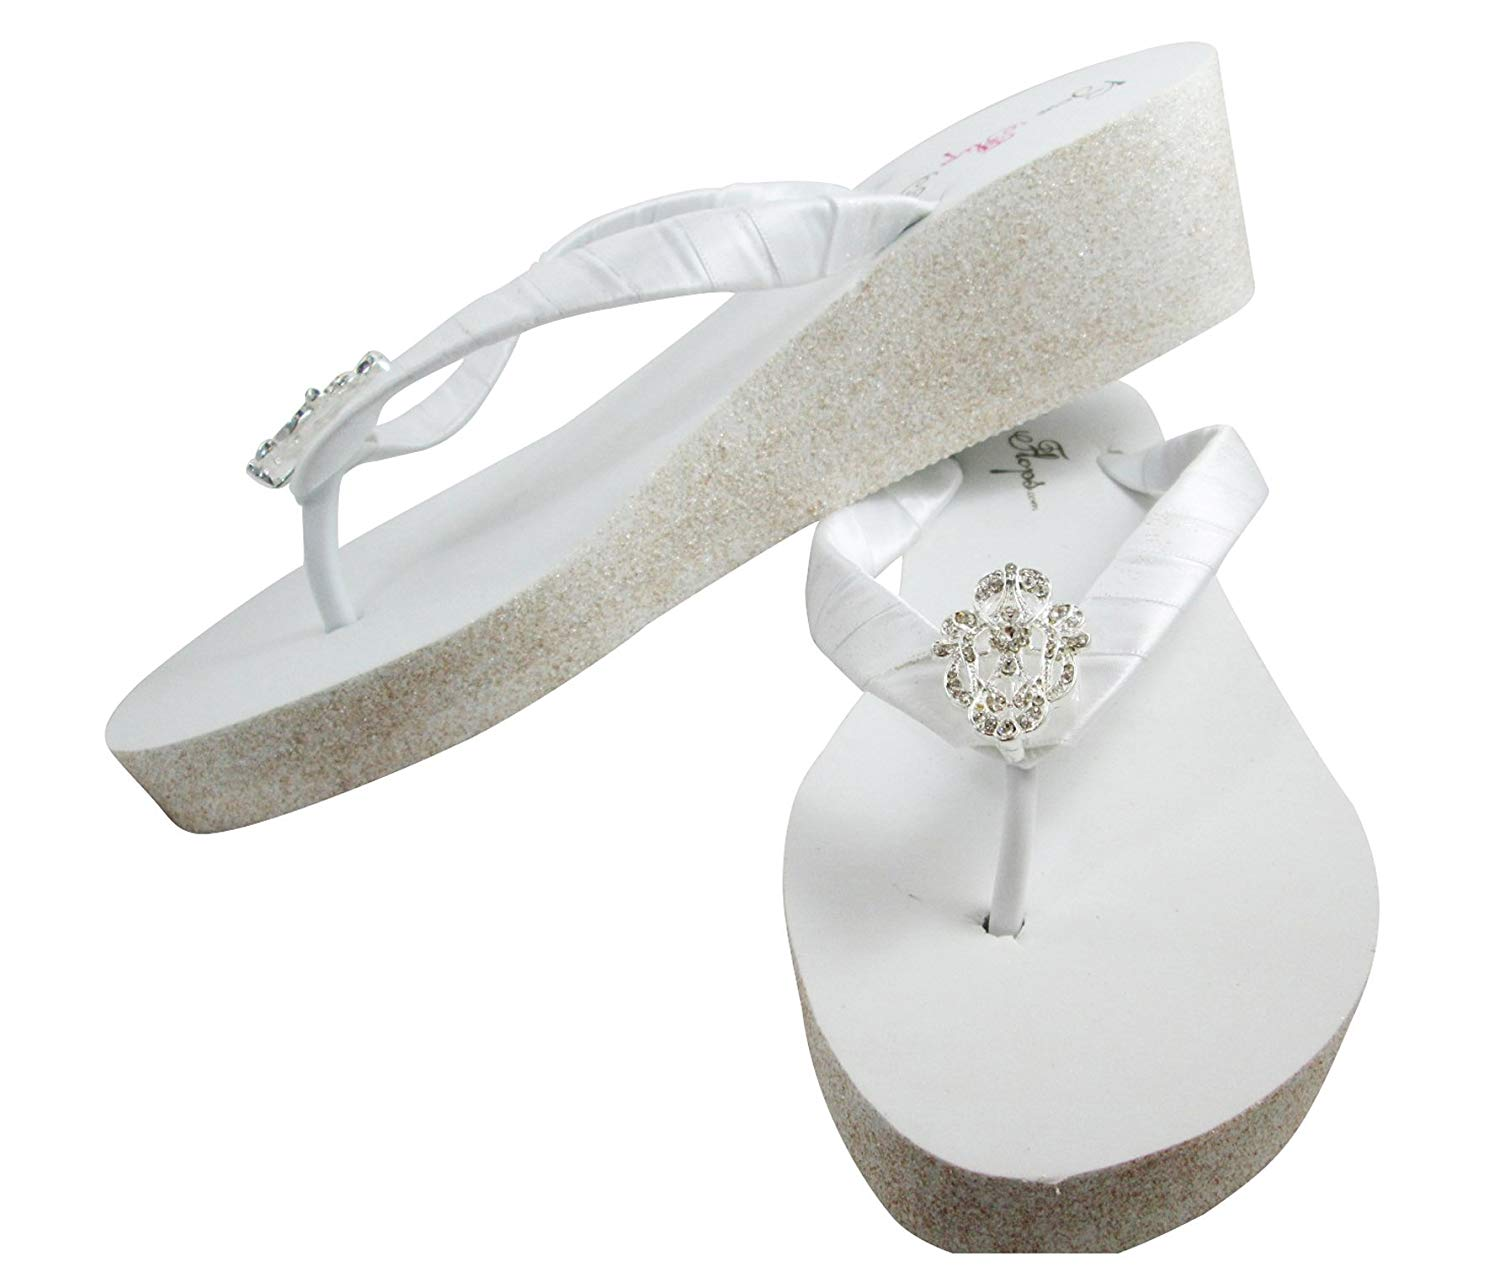 76f3134f18edb Buy Bridal Flip Flops Bride Bling Glitter Wedge Wedding Platform ...